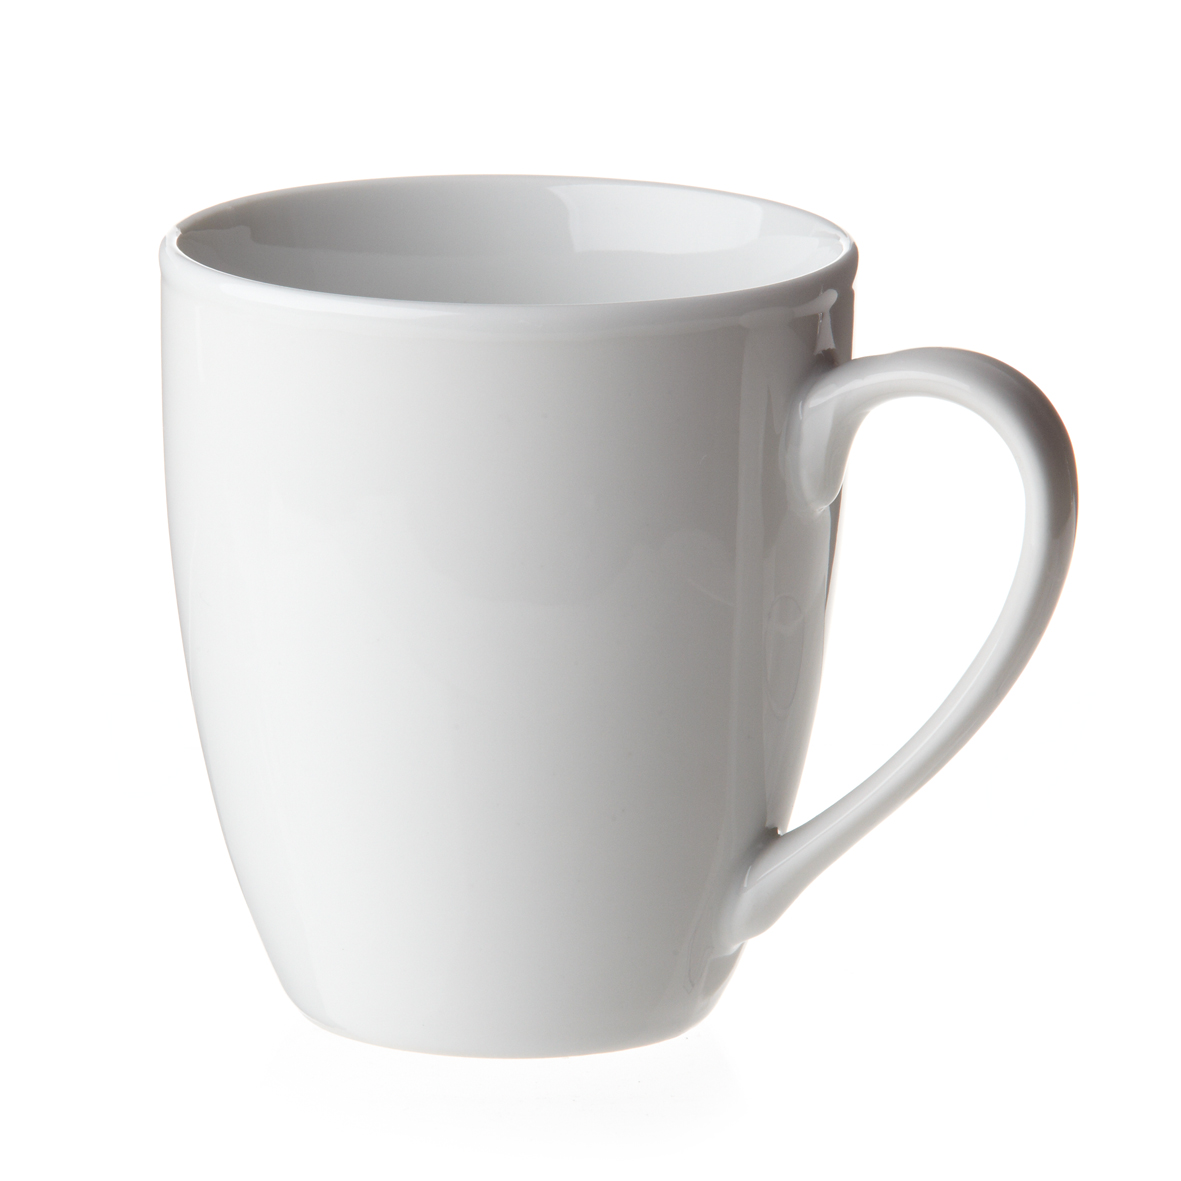 Mug en porcelaine VITAL - 31 cl - Réf. 592229 - Illustration n°1